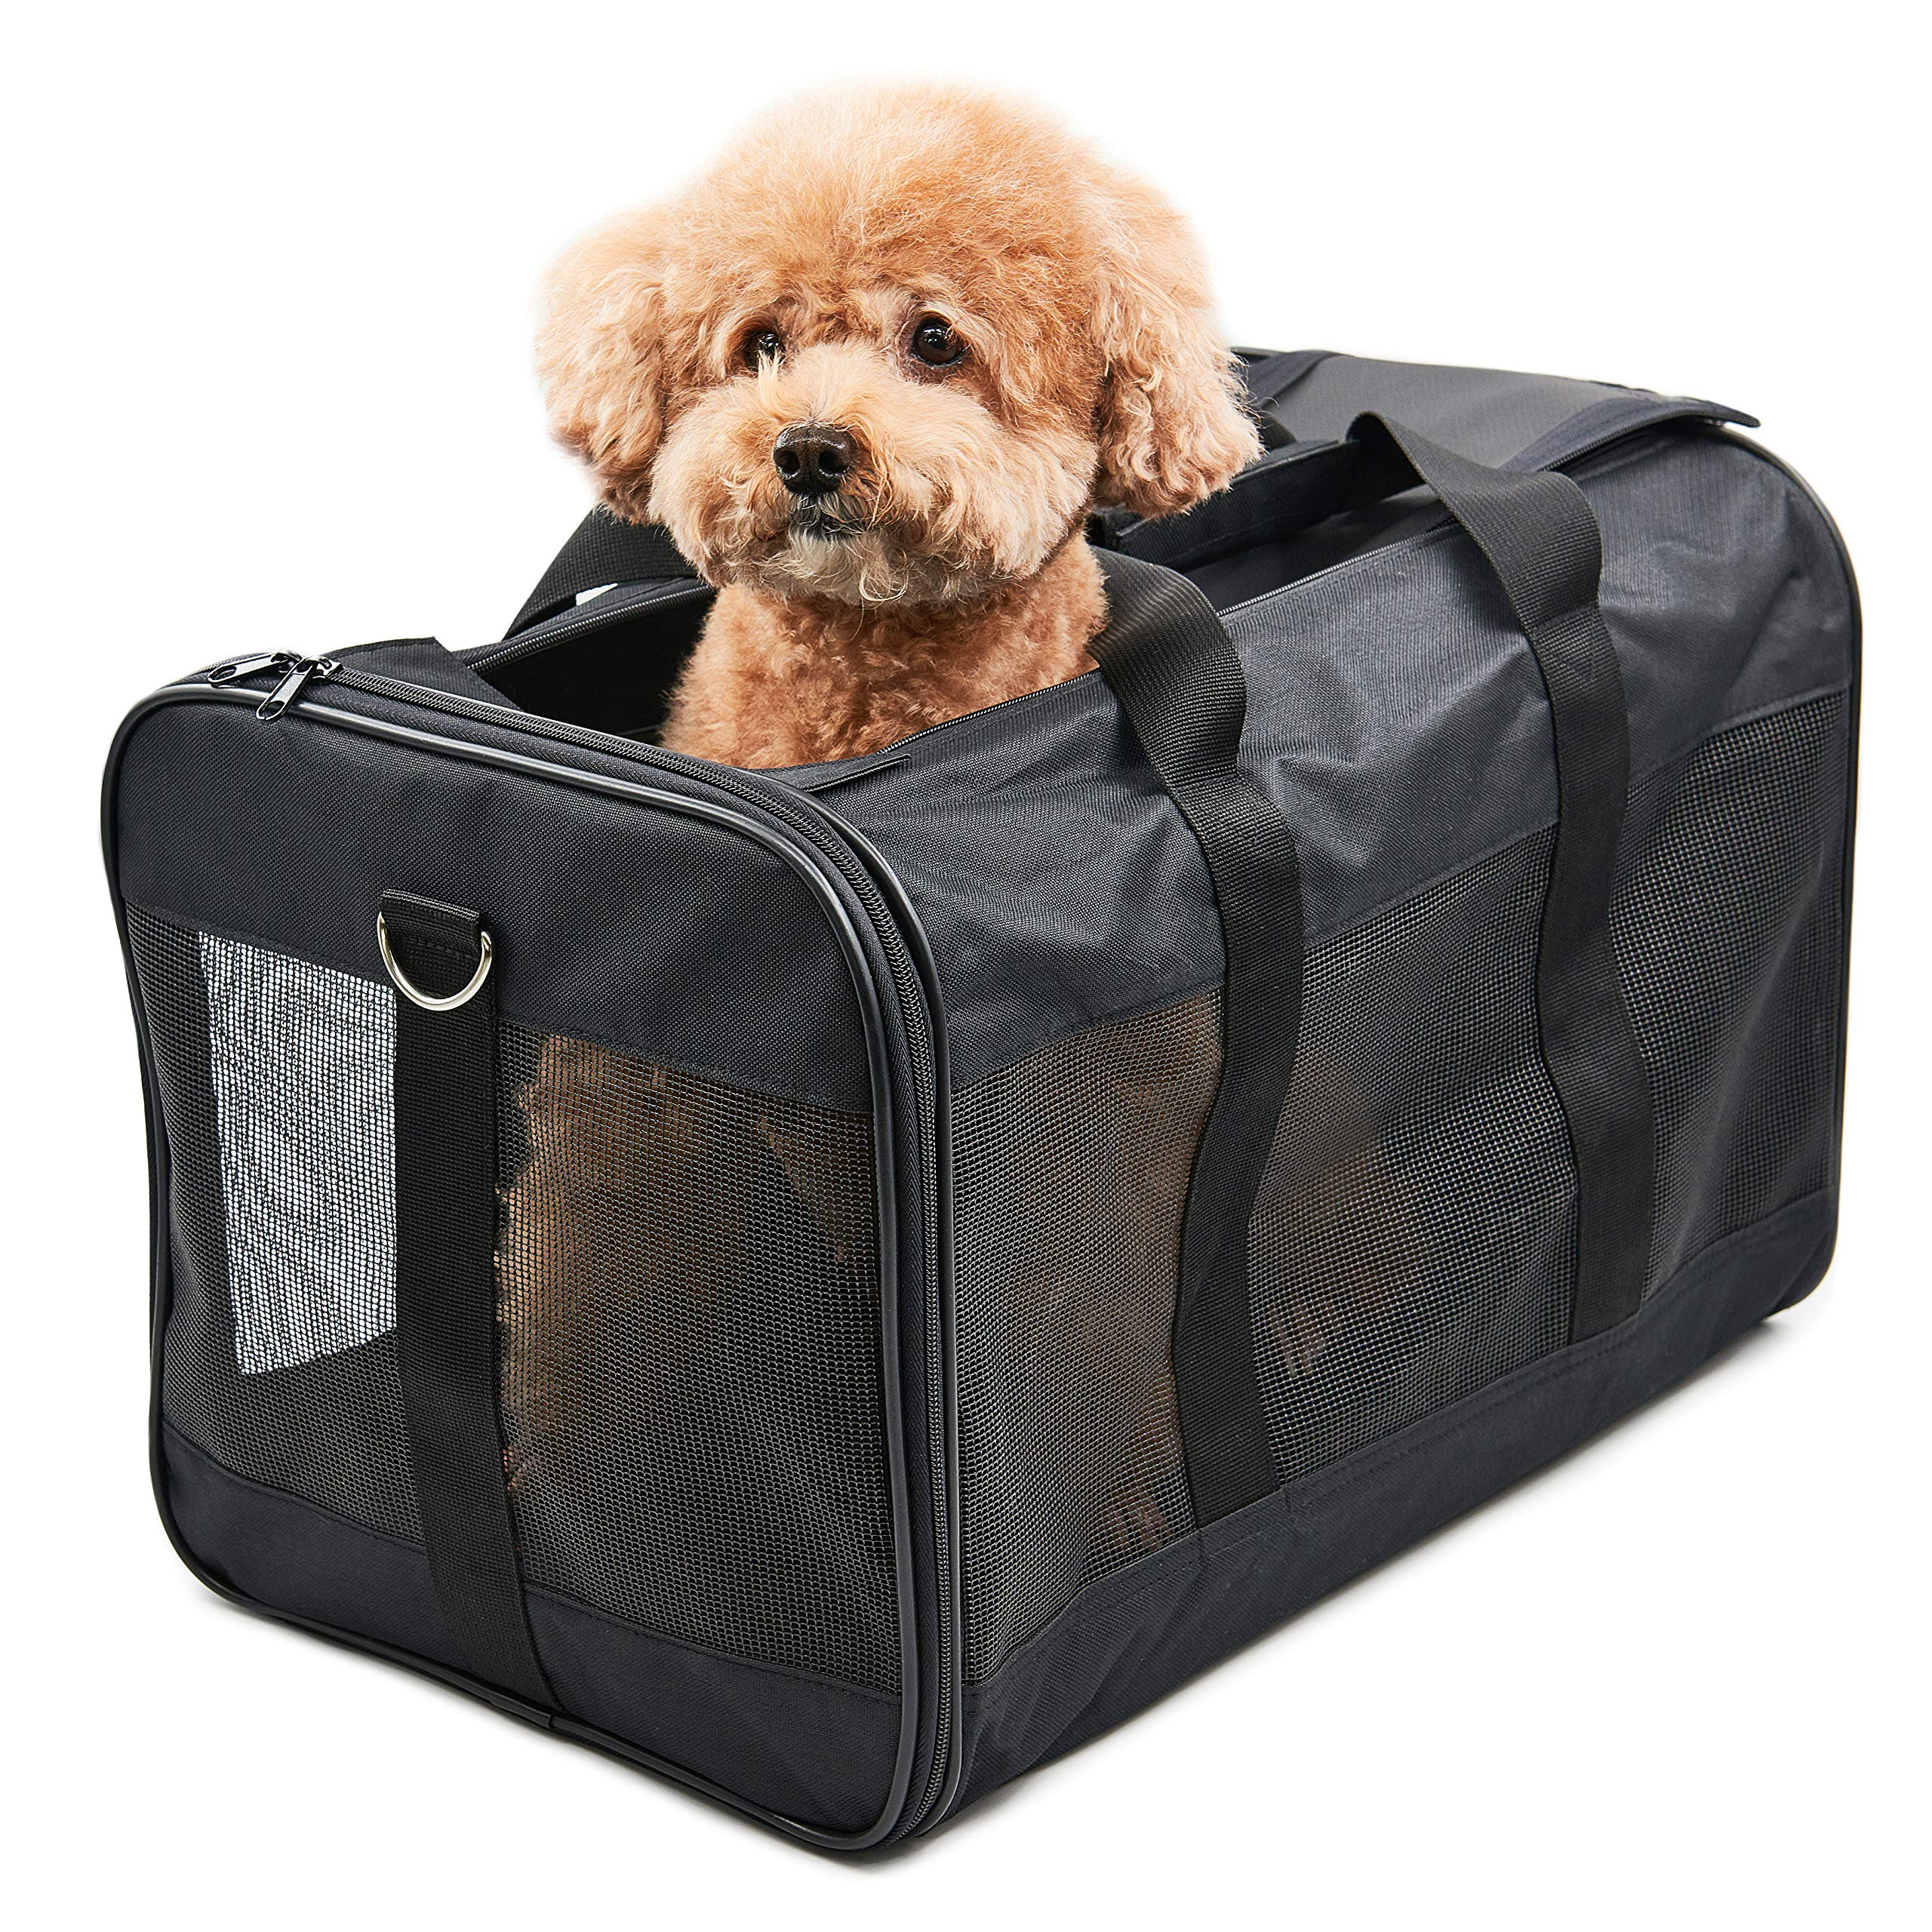 HITCH Pet Travel Carrier Soft Sided Portable Bag for Cats, Small Dogs, Kittens or Puppies, Collapsible, Durable, Airline Approved, Travel Friendly, Carry Your Pet with You Safely and Comfortably (L) by HITCH